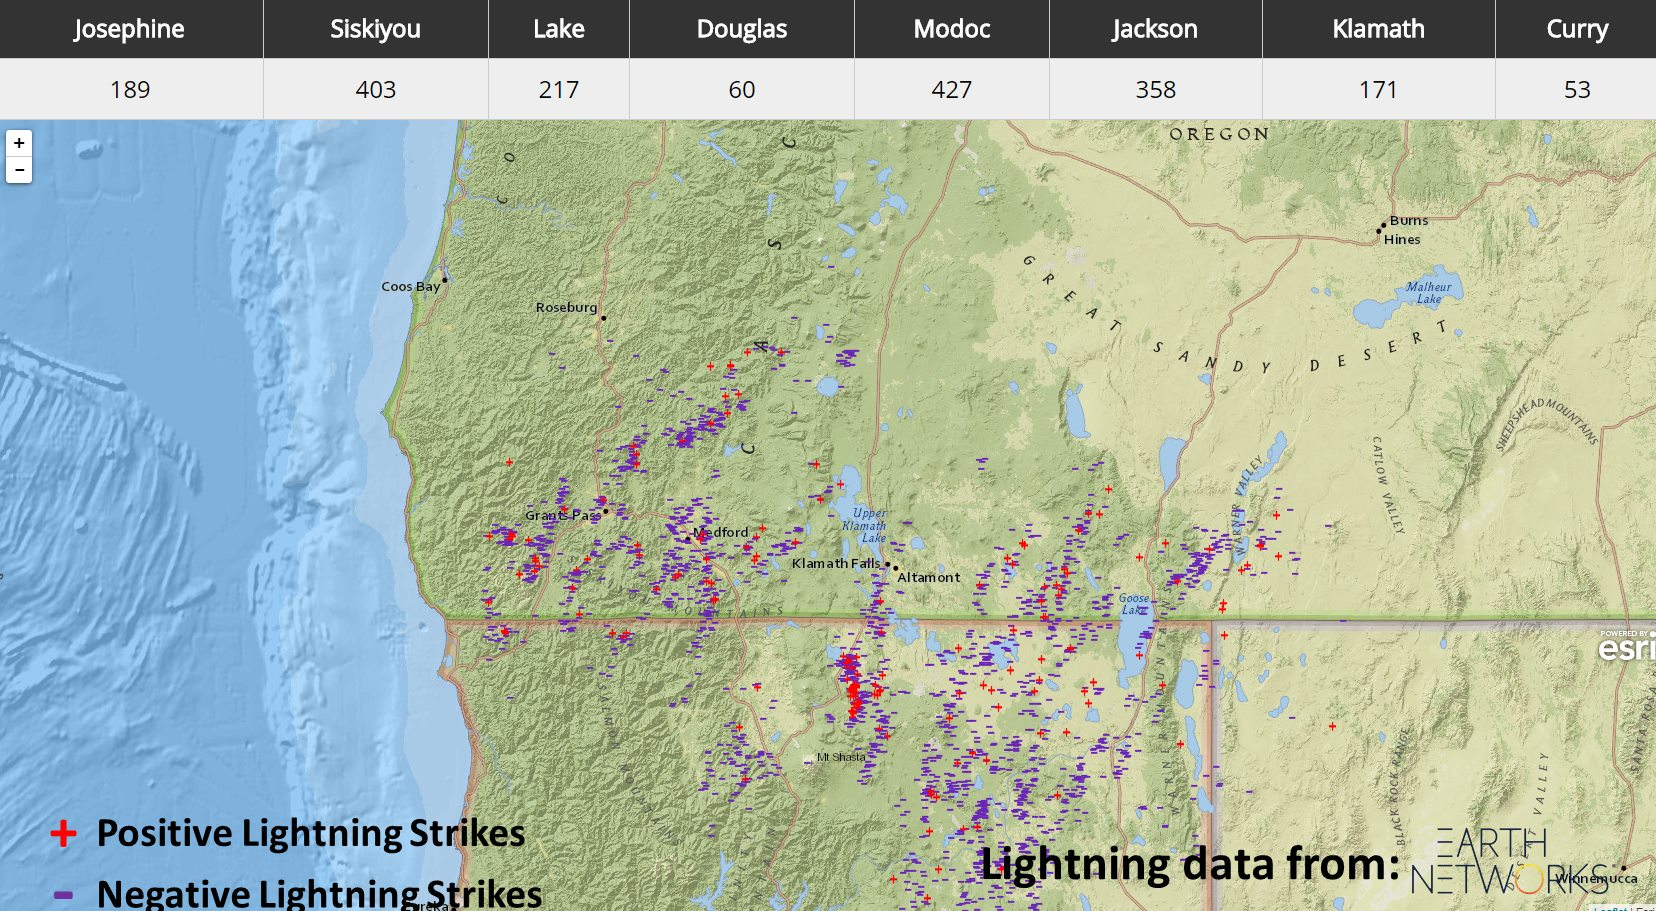 Map of lightning strikes in the Southern Oregon, Northern California area for July 15, 2018.